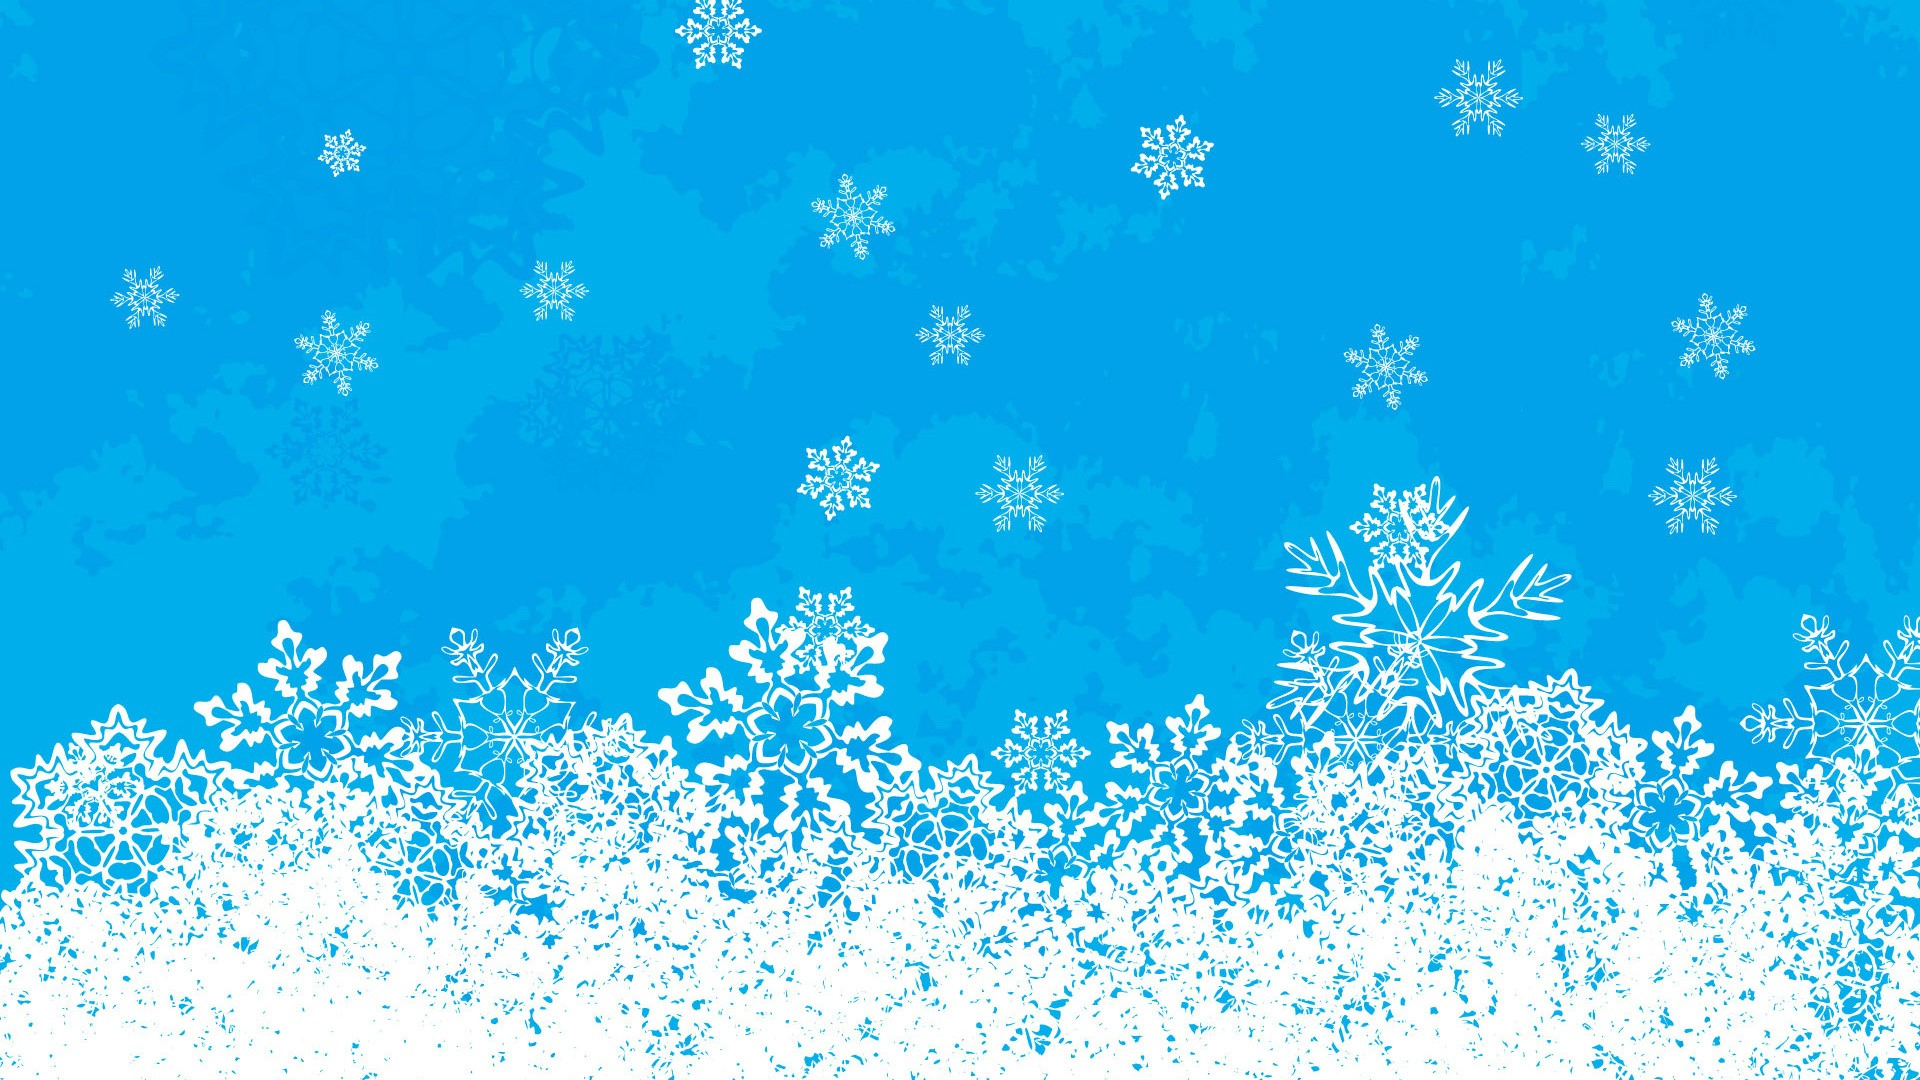 Wallpaper Snowflakes on blue background